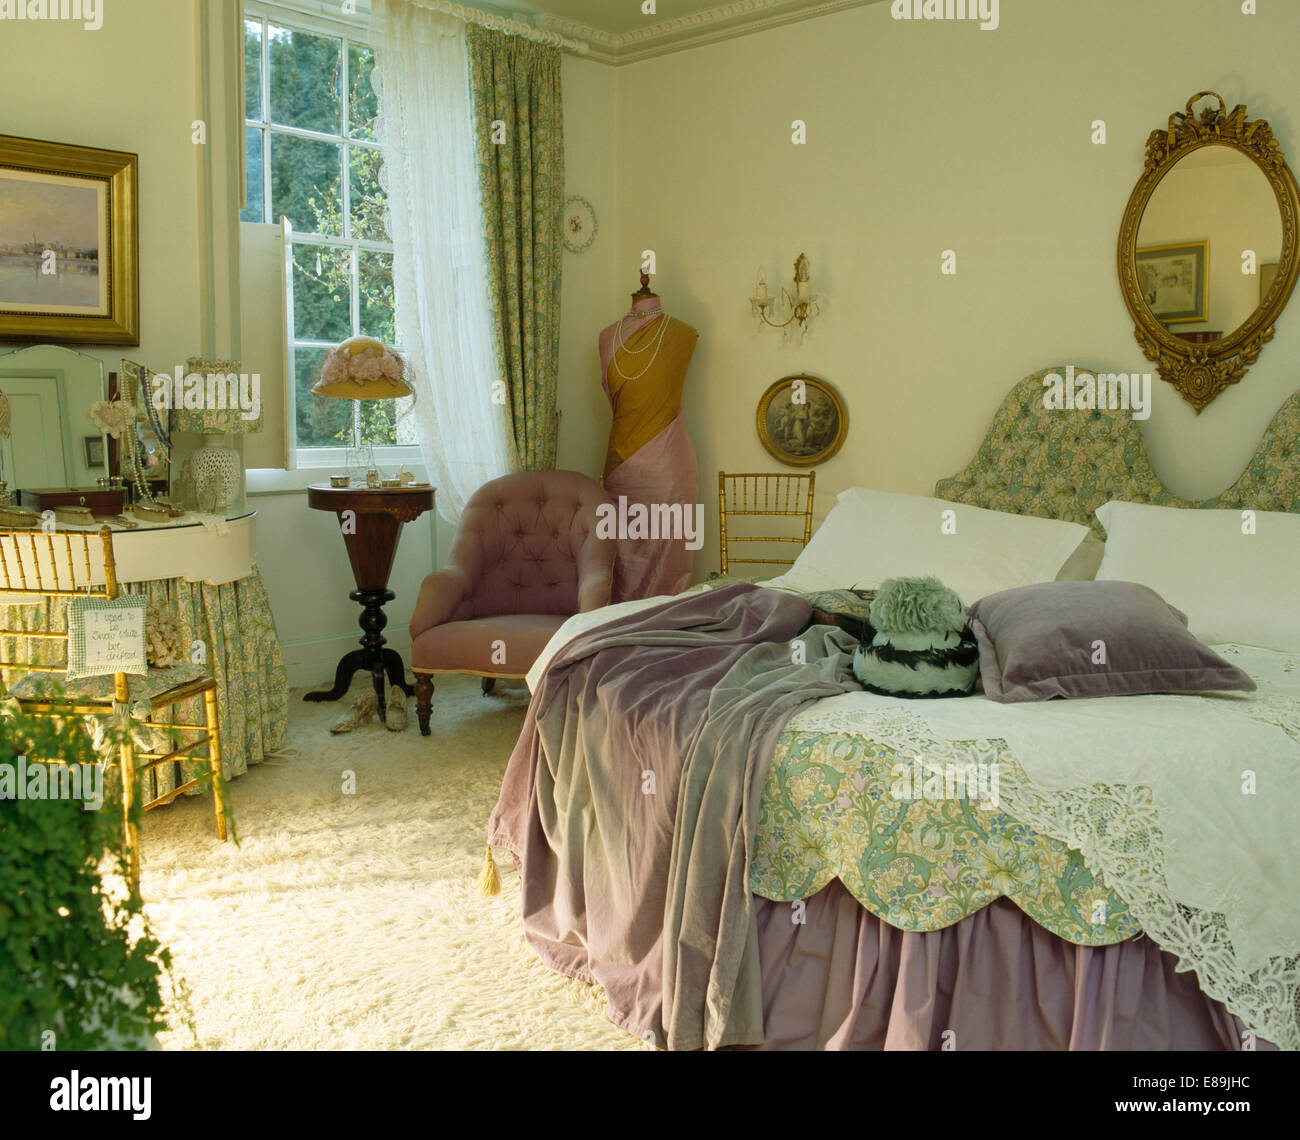 mauve throw on bed with pale green quilt and lace bedcover in